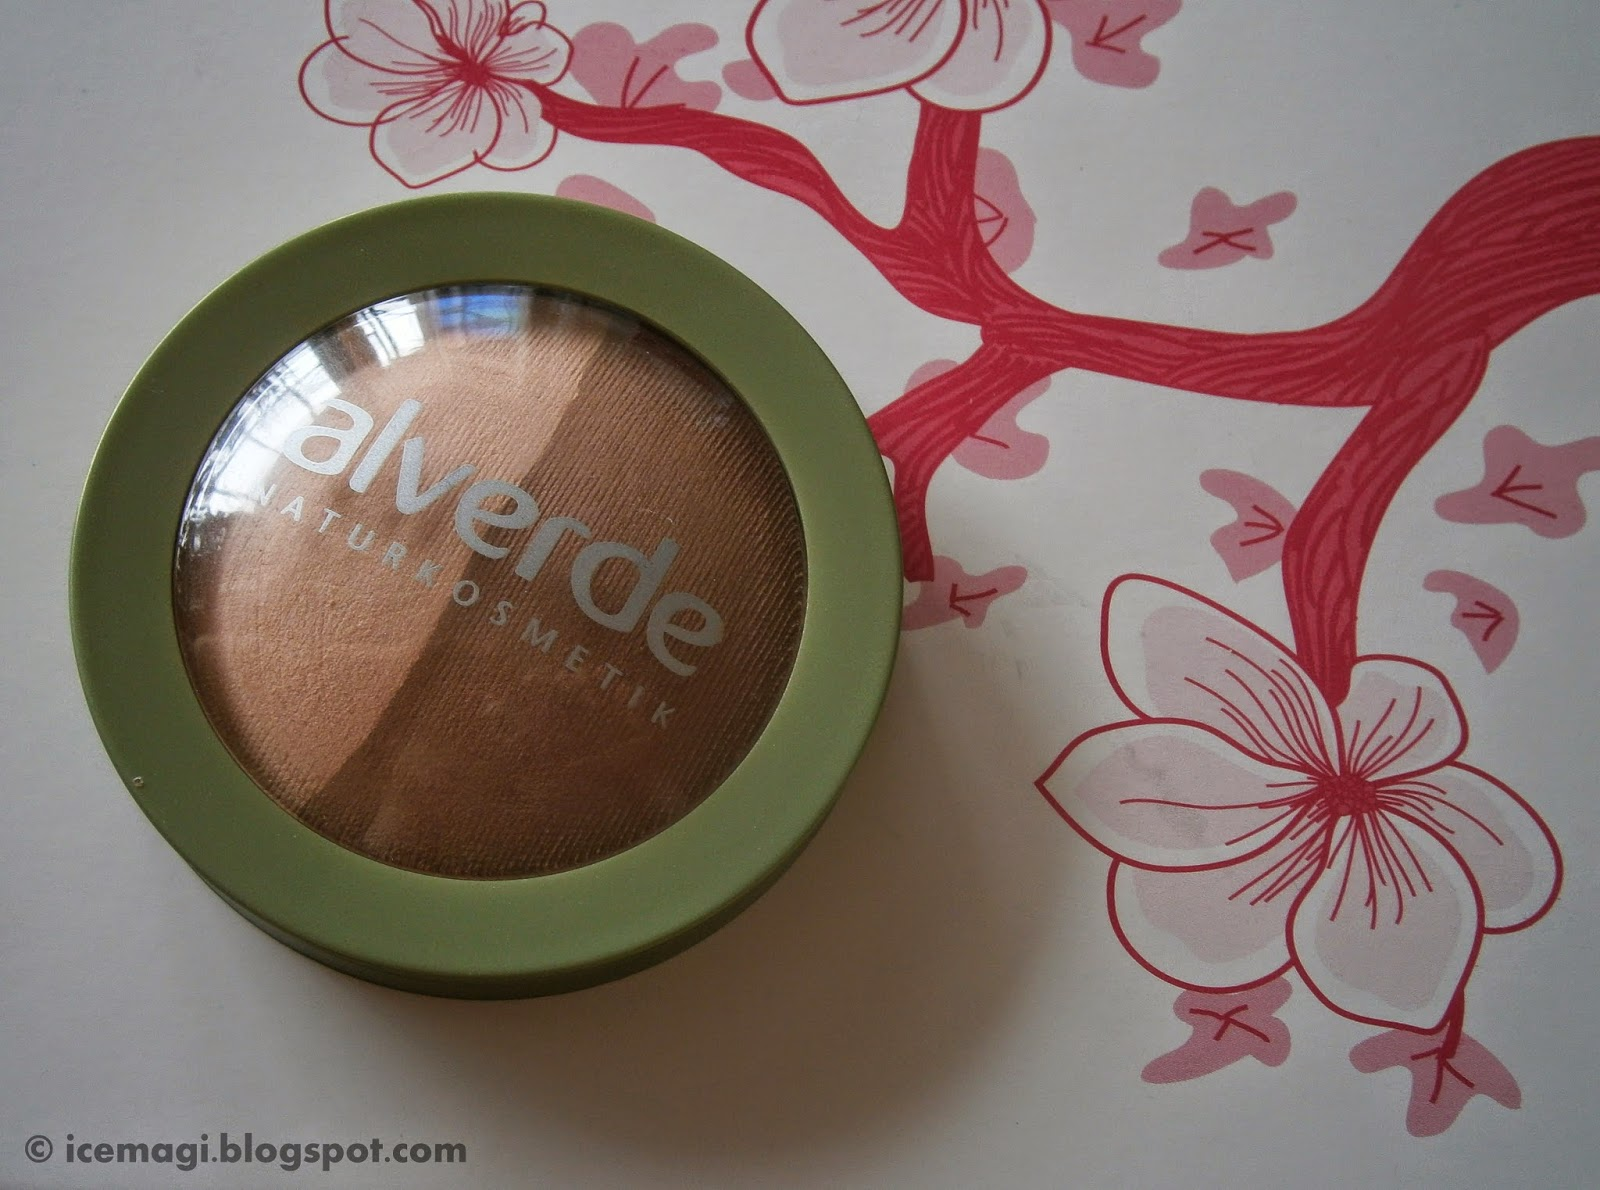 Alverde Duo-bronzer #10 light bronze